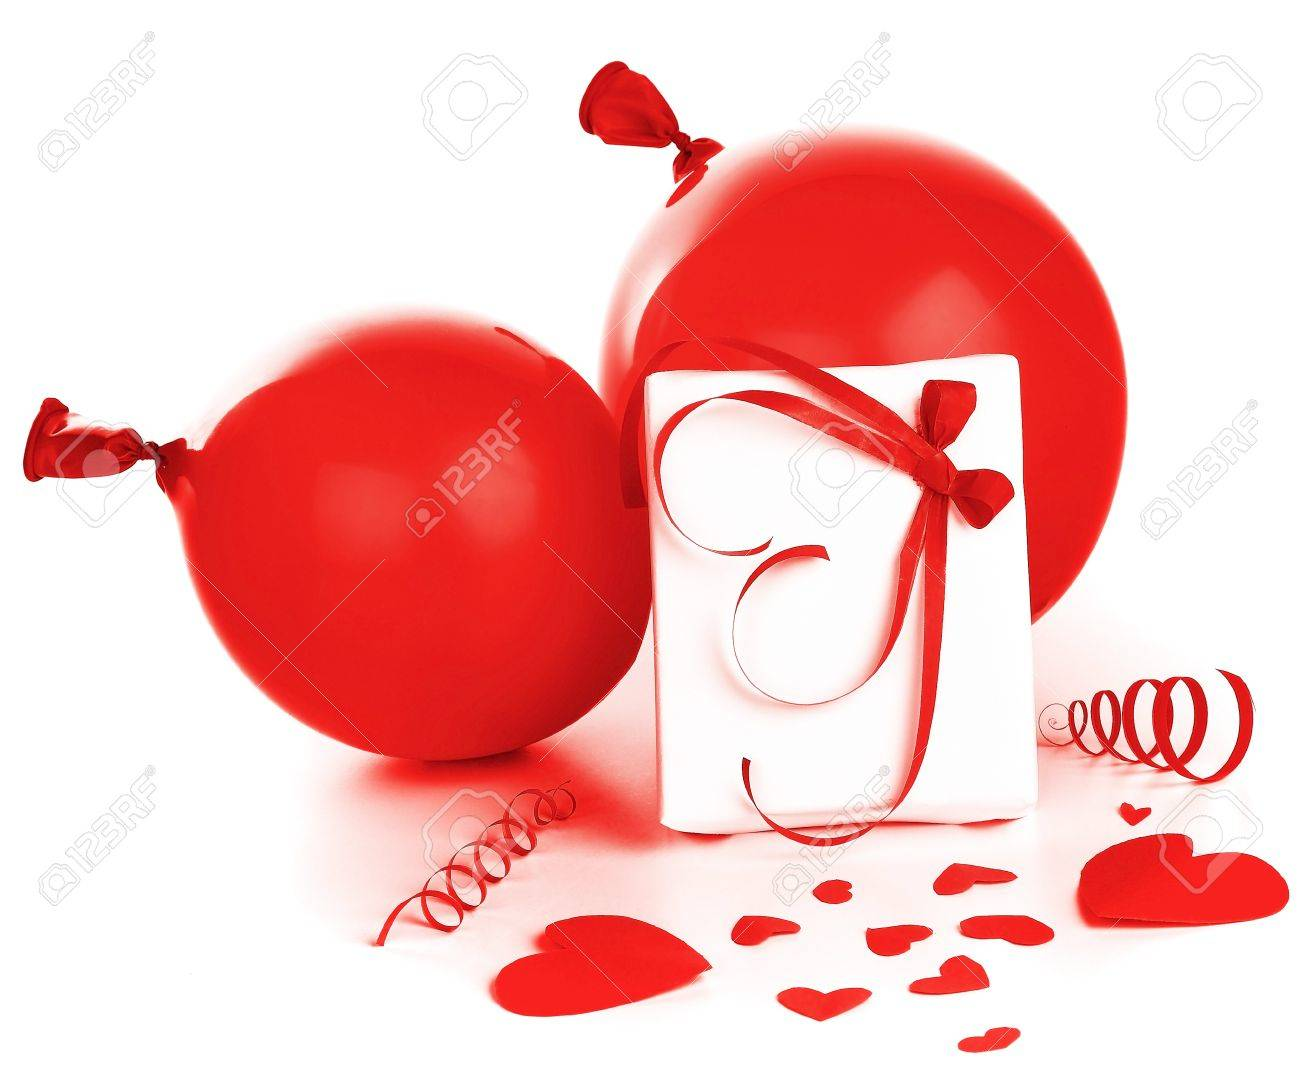 Gift box with red hearts & baloons isolated on white background, conceptual image of love & Valentine's day holiday Stock Photo - 8876011